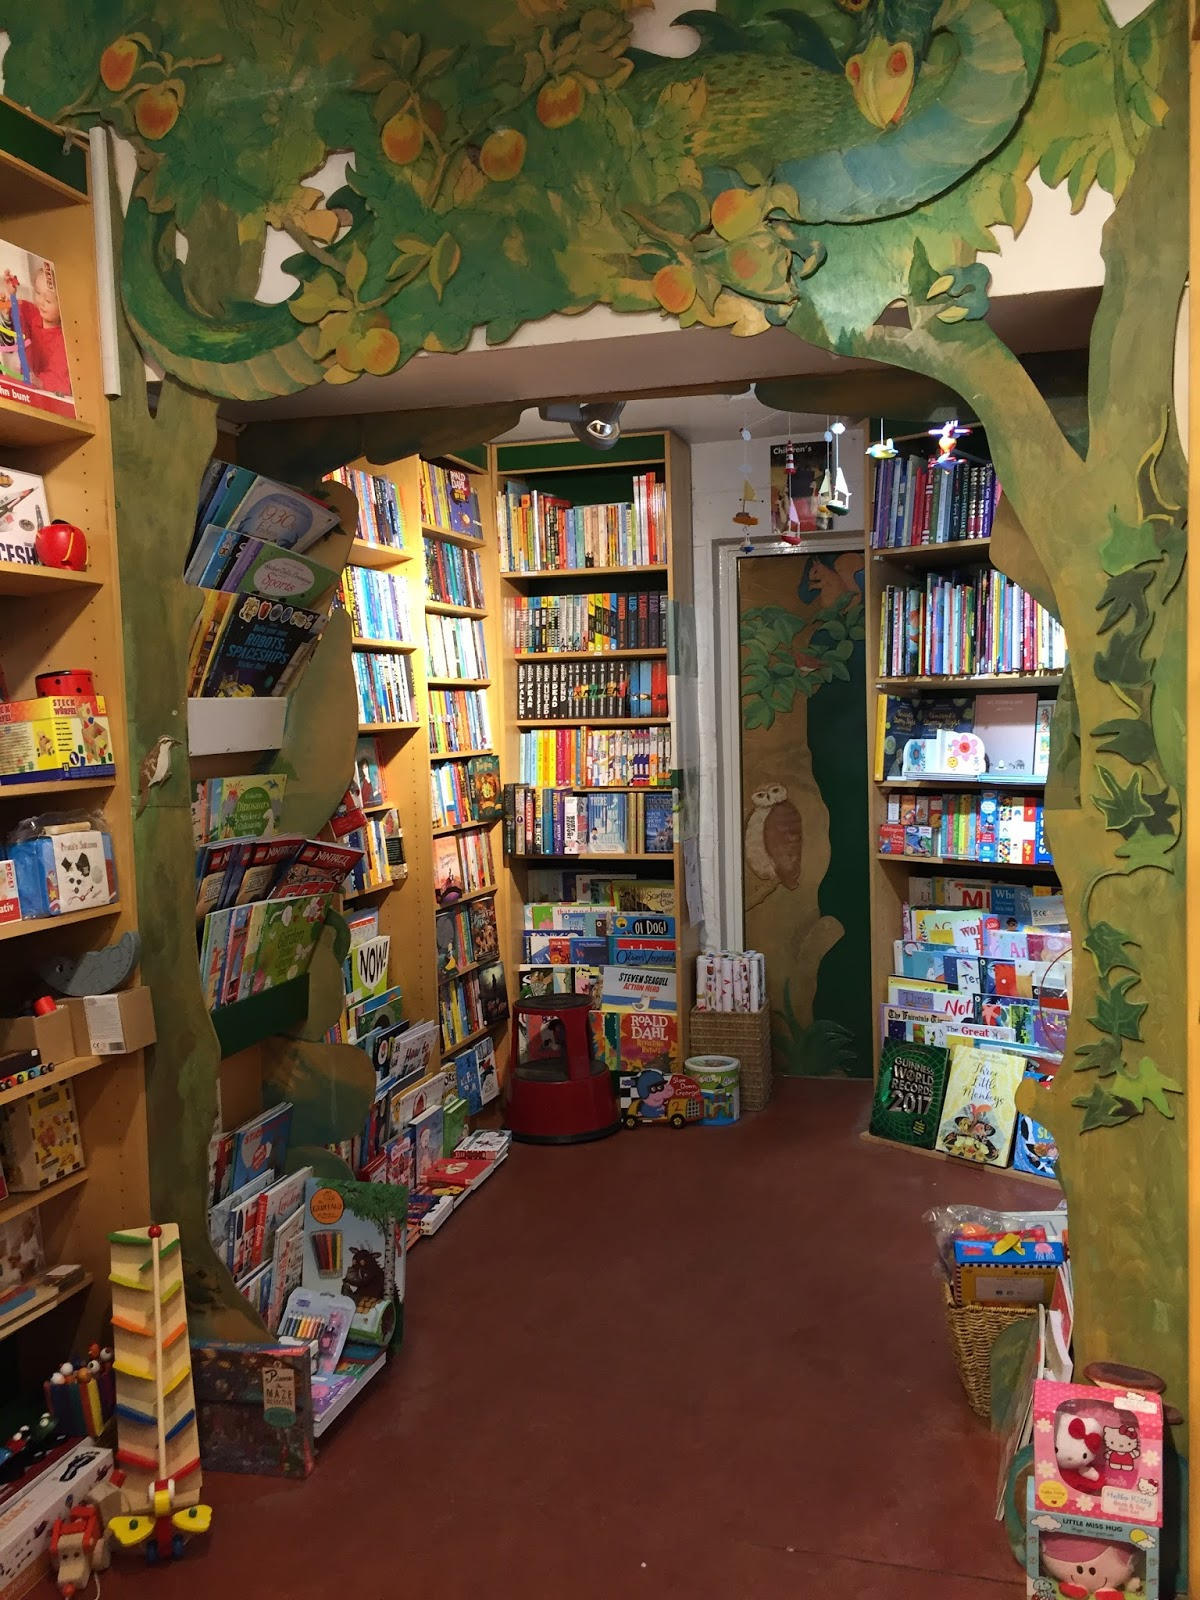 A happy turn of events - The bookshop around the corner